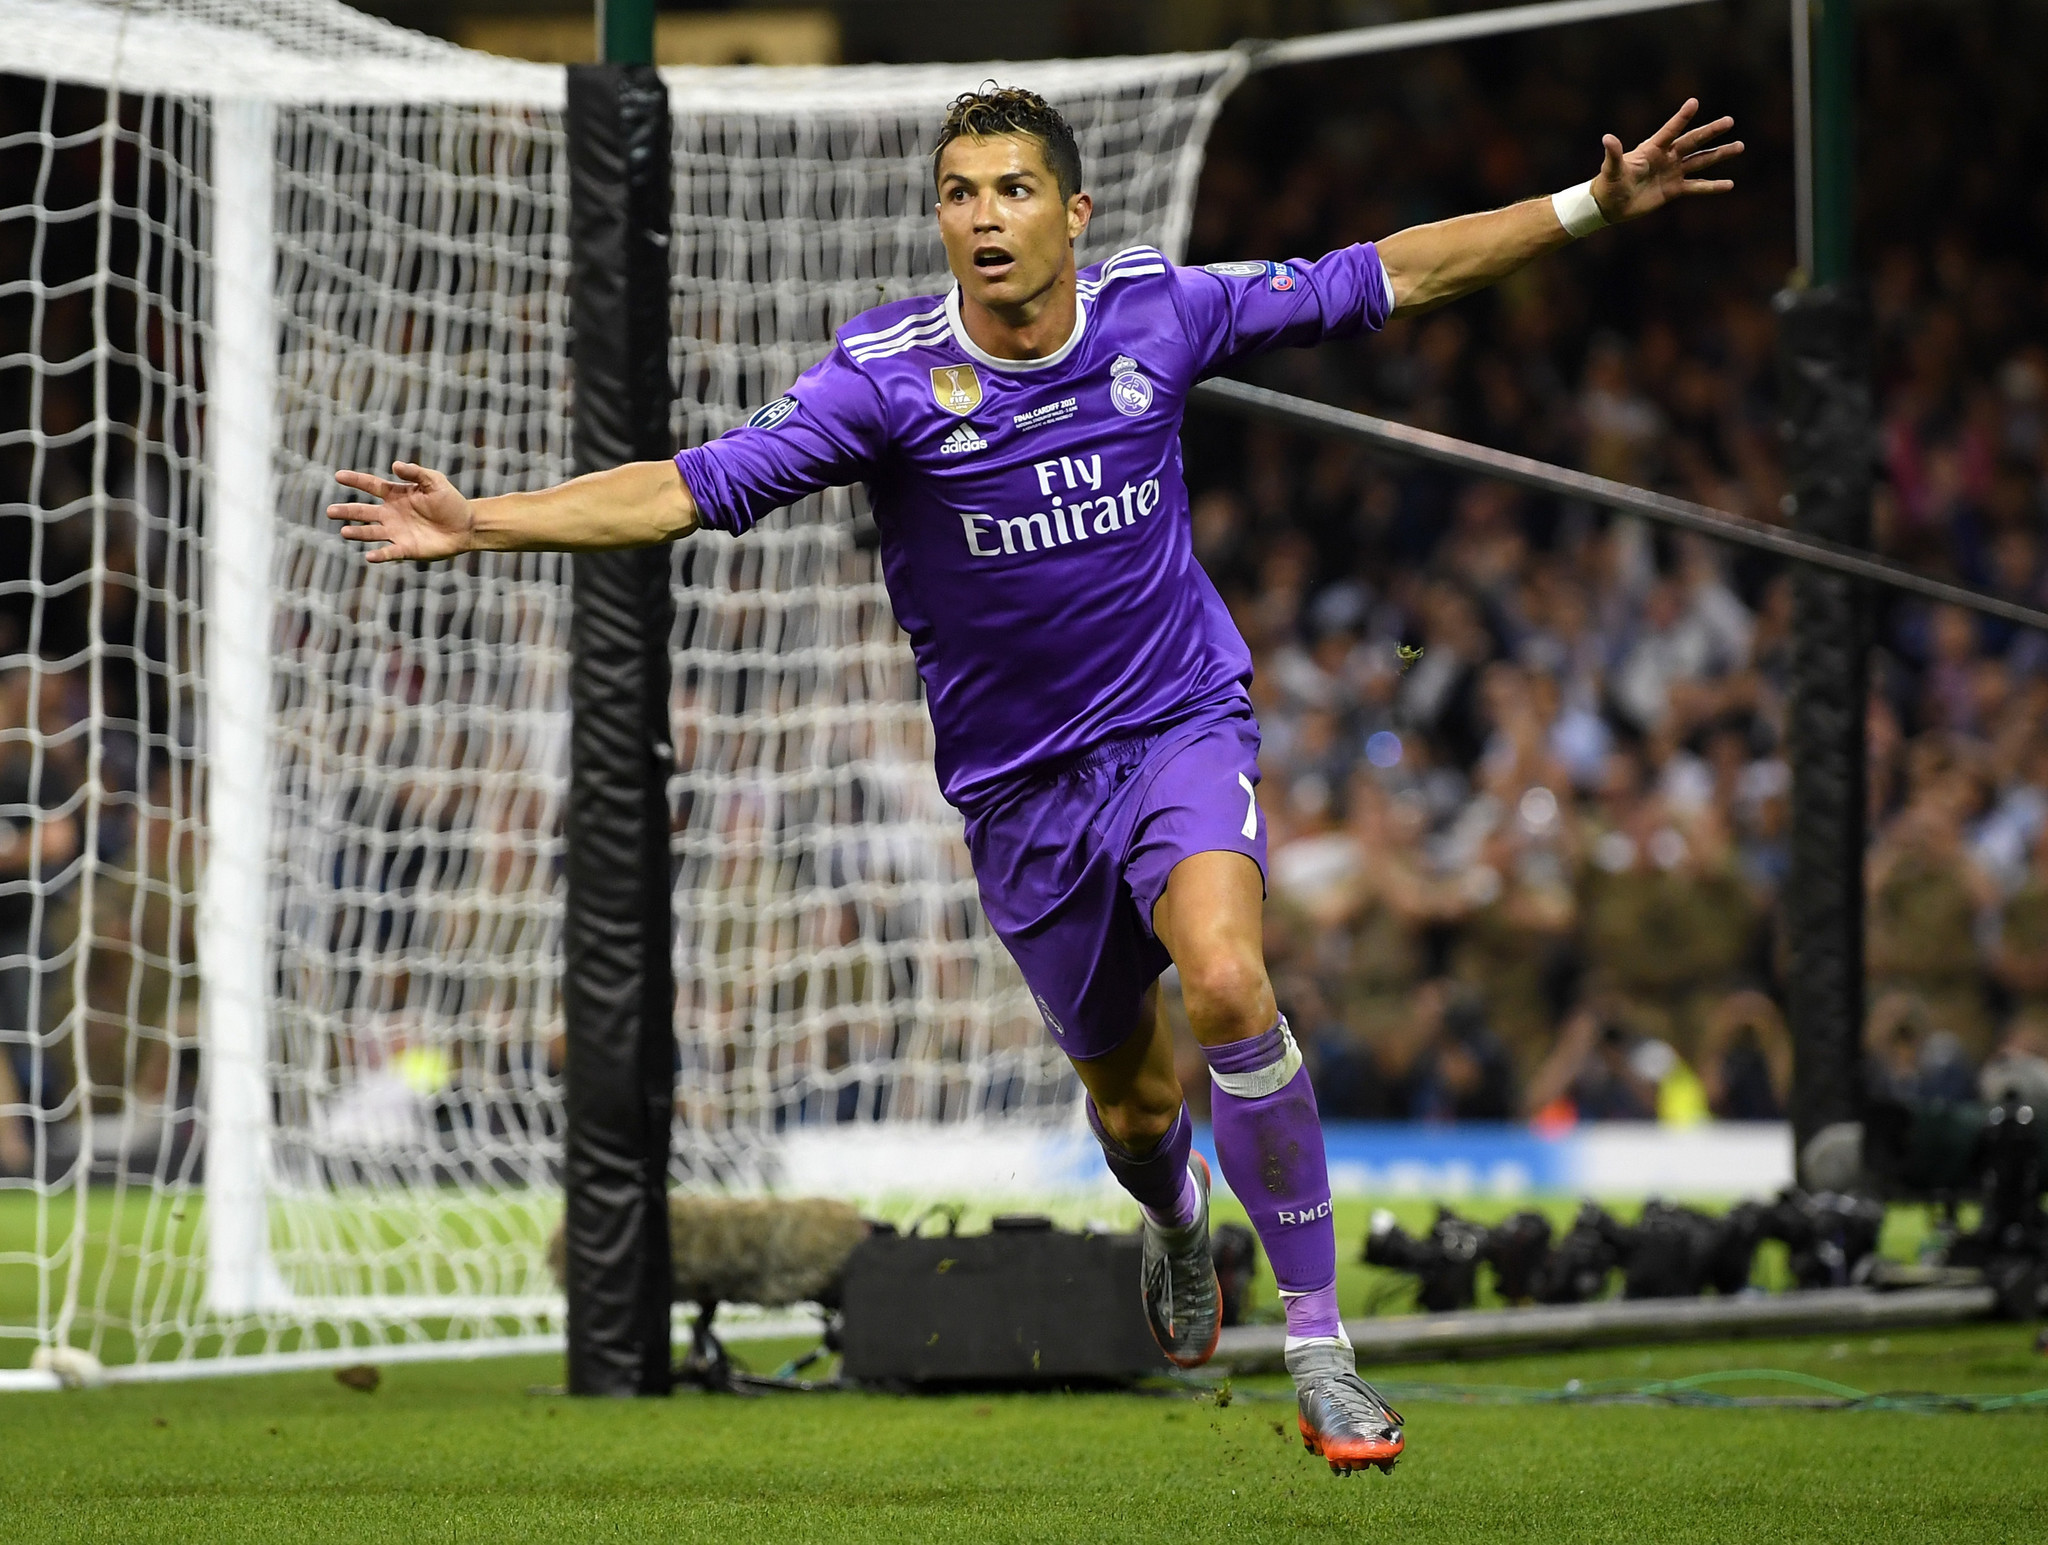 Real Madrid s Cristiano Ronaldo won t be in Chicago to face MLS